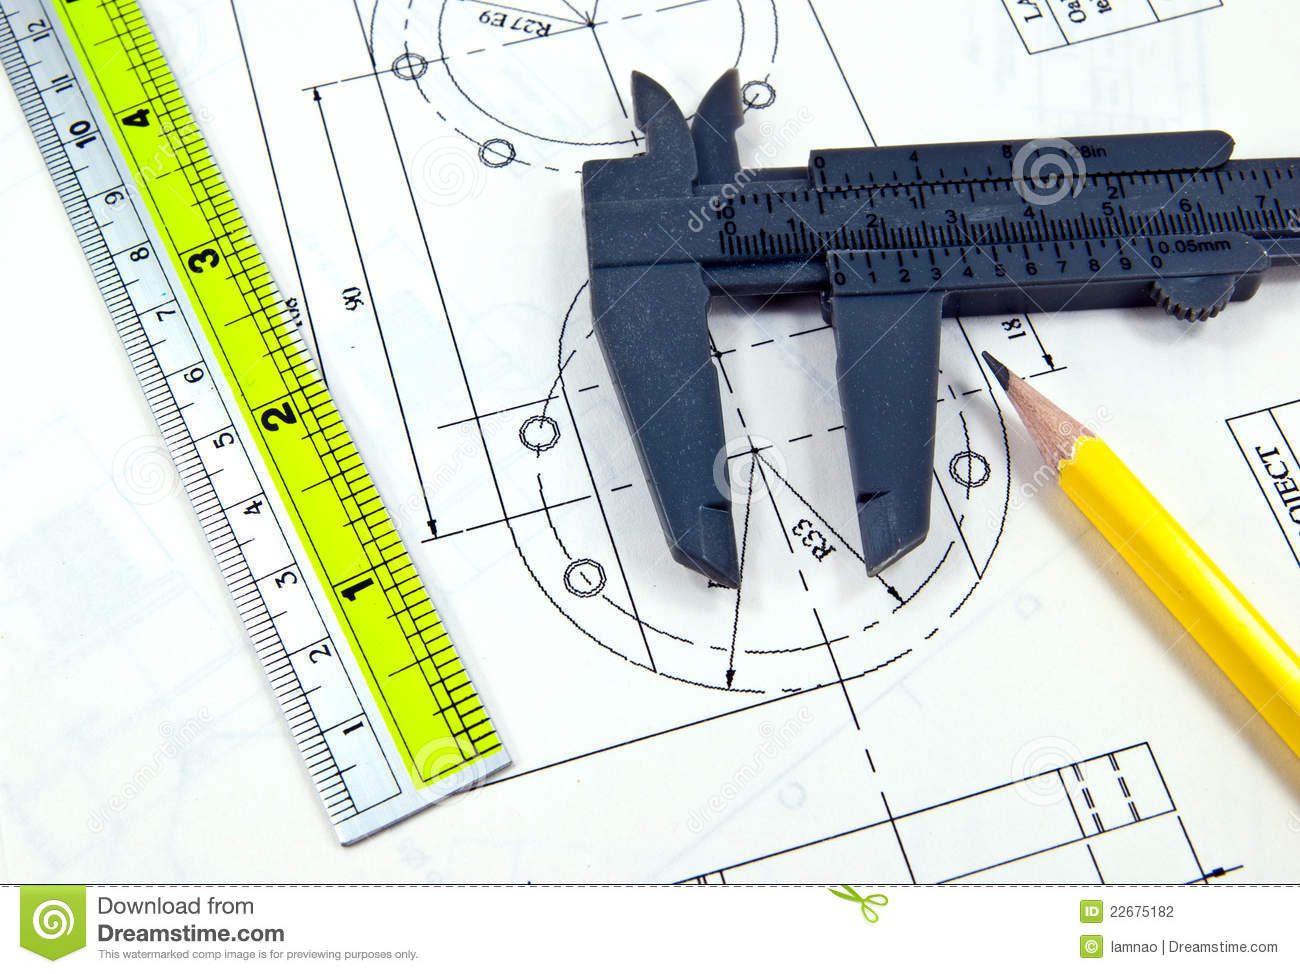 drawing tools This is an architectural tool, which facilitates the use of drawing straight lines and right angles, hand holding a drafting compass a hand holds and employs a drafting compass, a device used to create precise arcs and circles in mechanical.